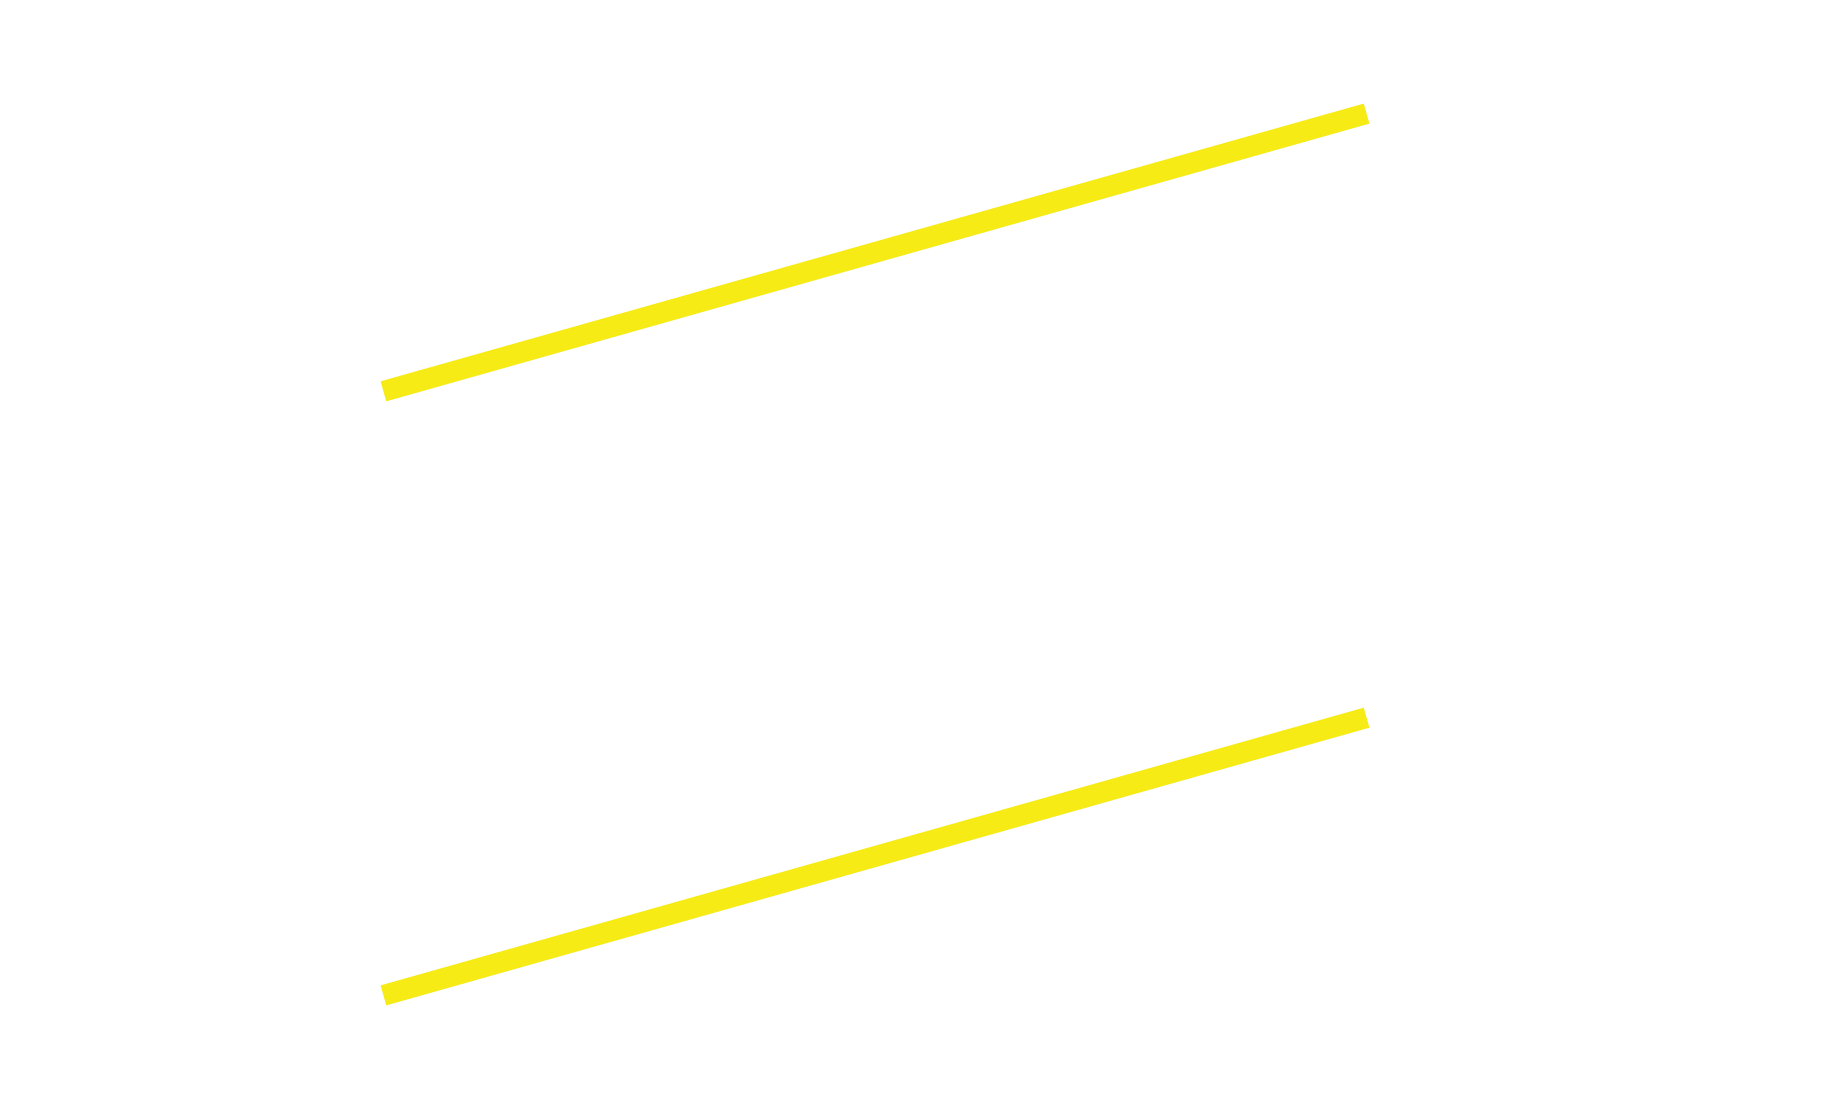 Family Owned Since 2012